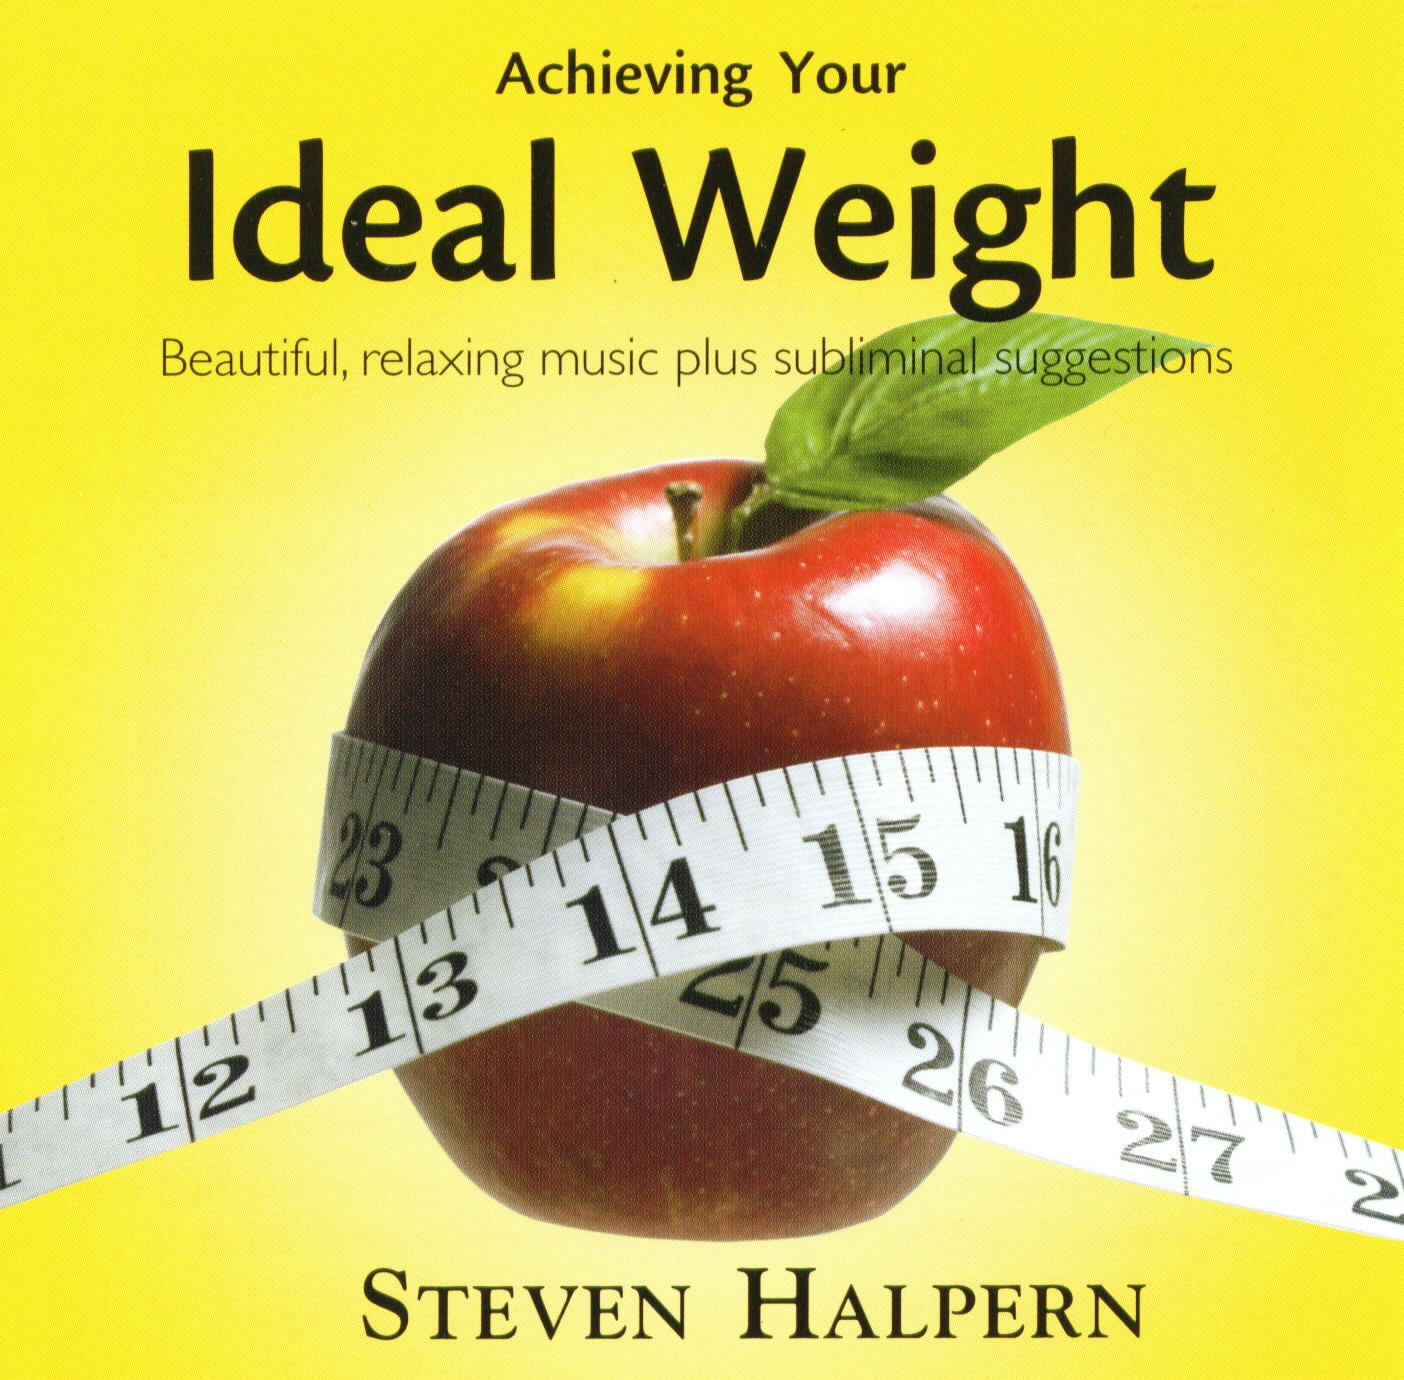 Acieving Your Ideal Weight